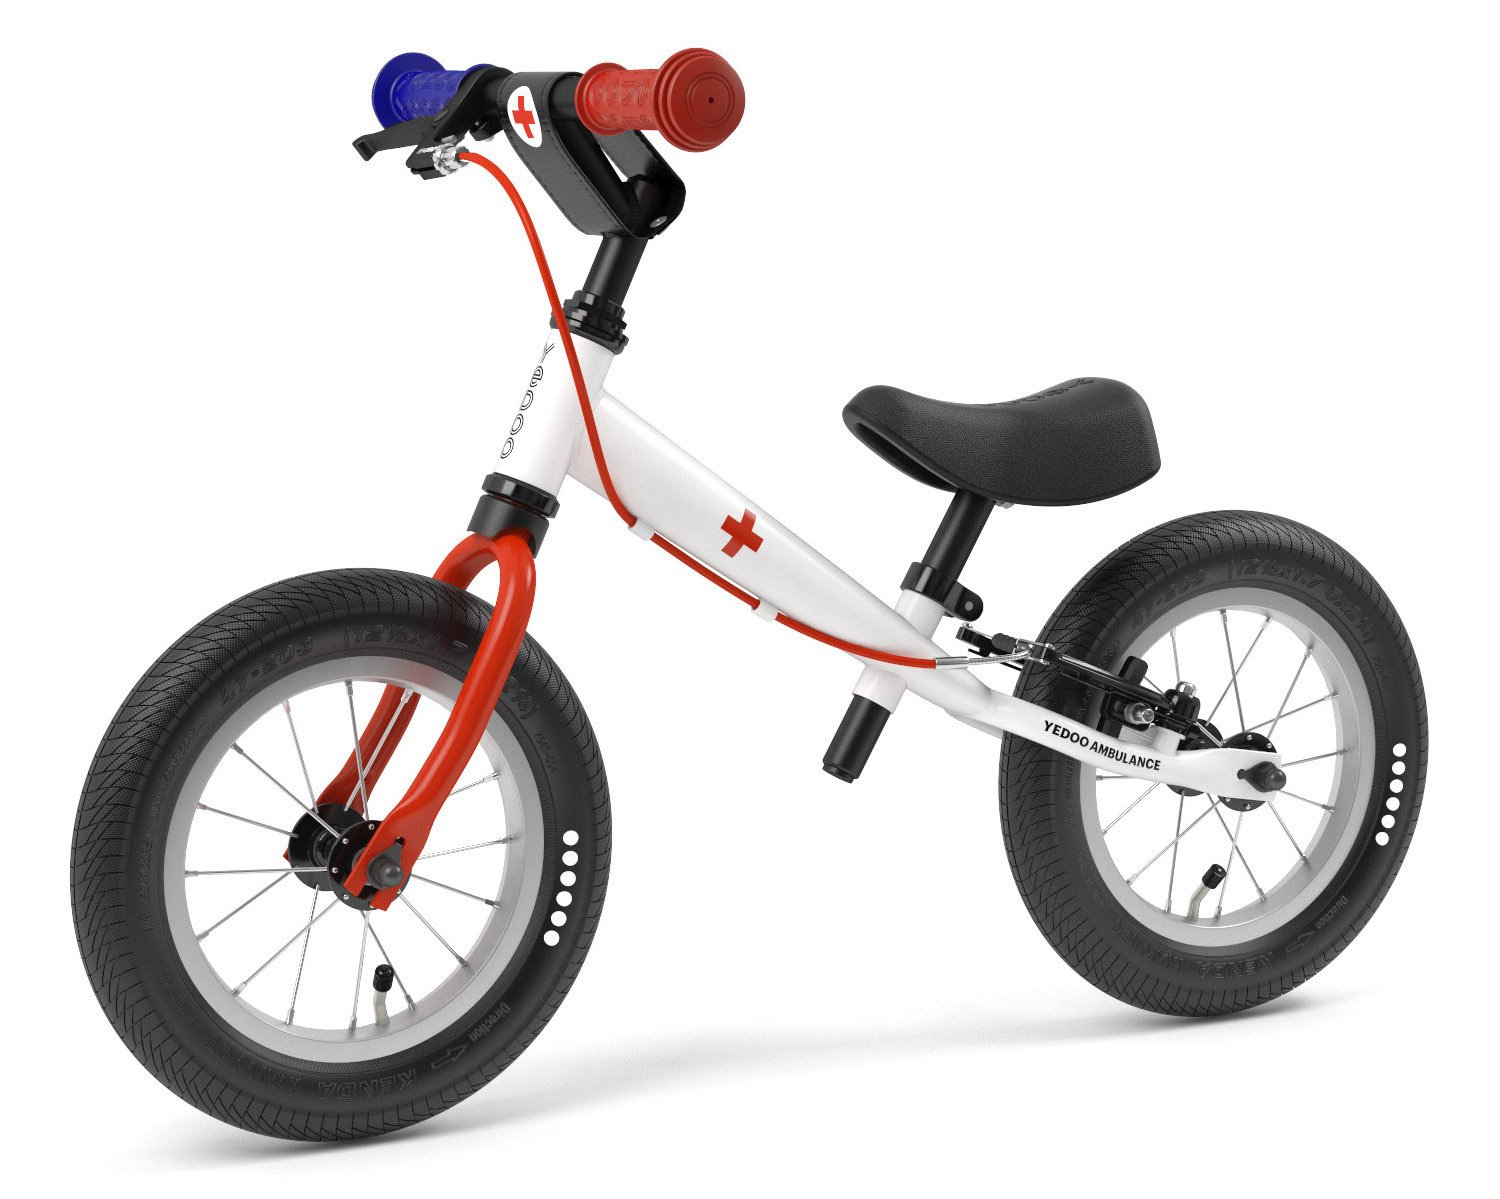 Top 11 Best Balance Bikes for Toddlers (2019 Reviews) 6